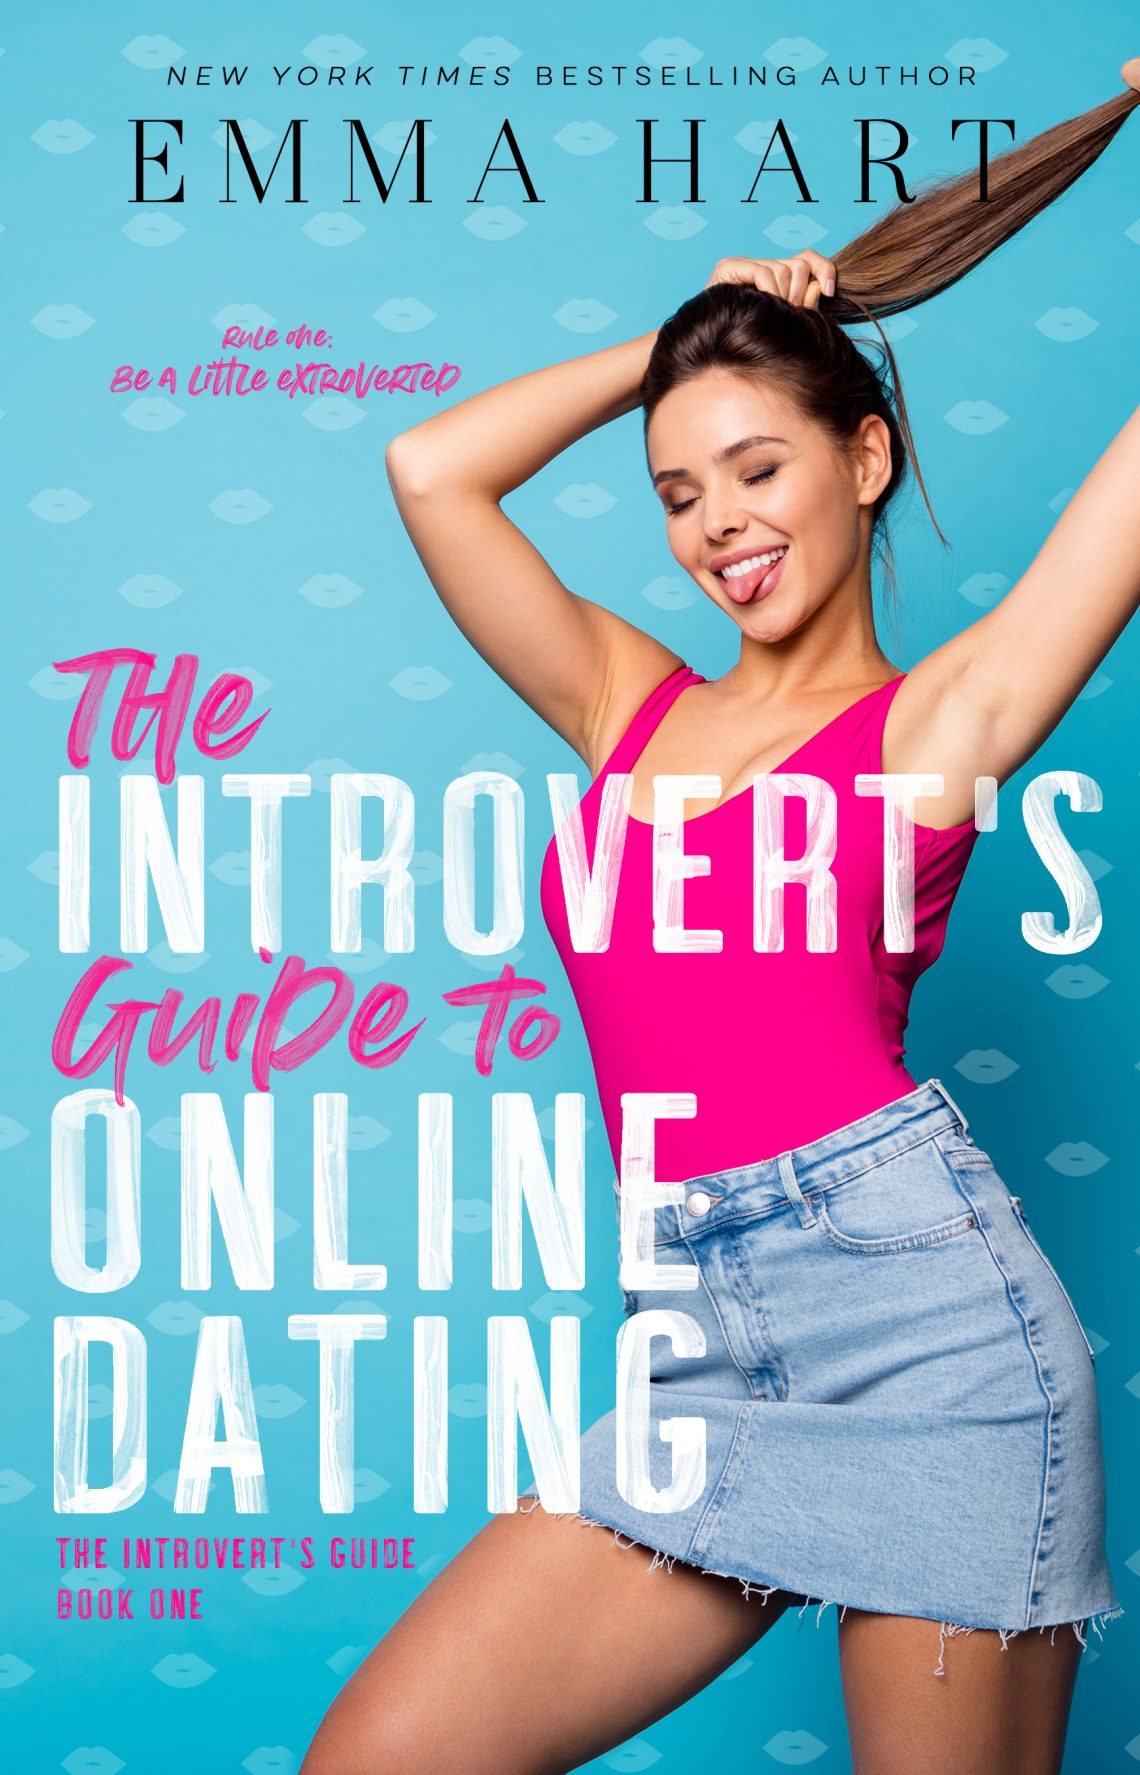 Book cover of The Introvert's Guide to Online Dating by Emma Hart